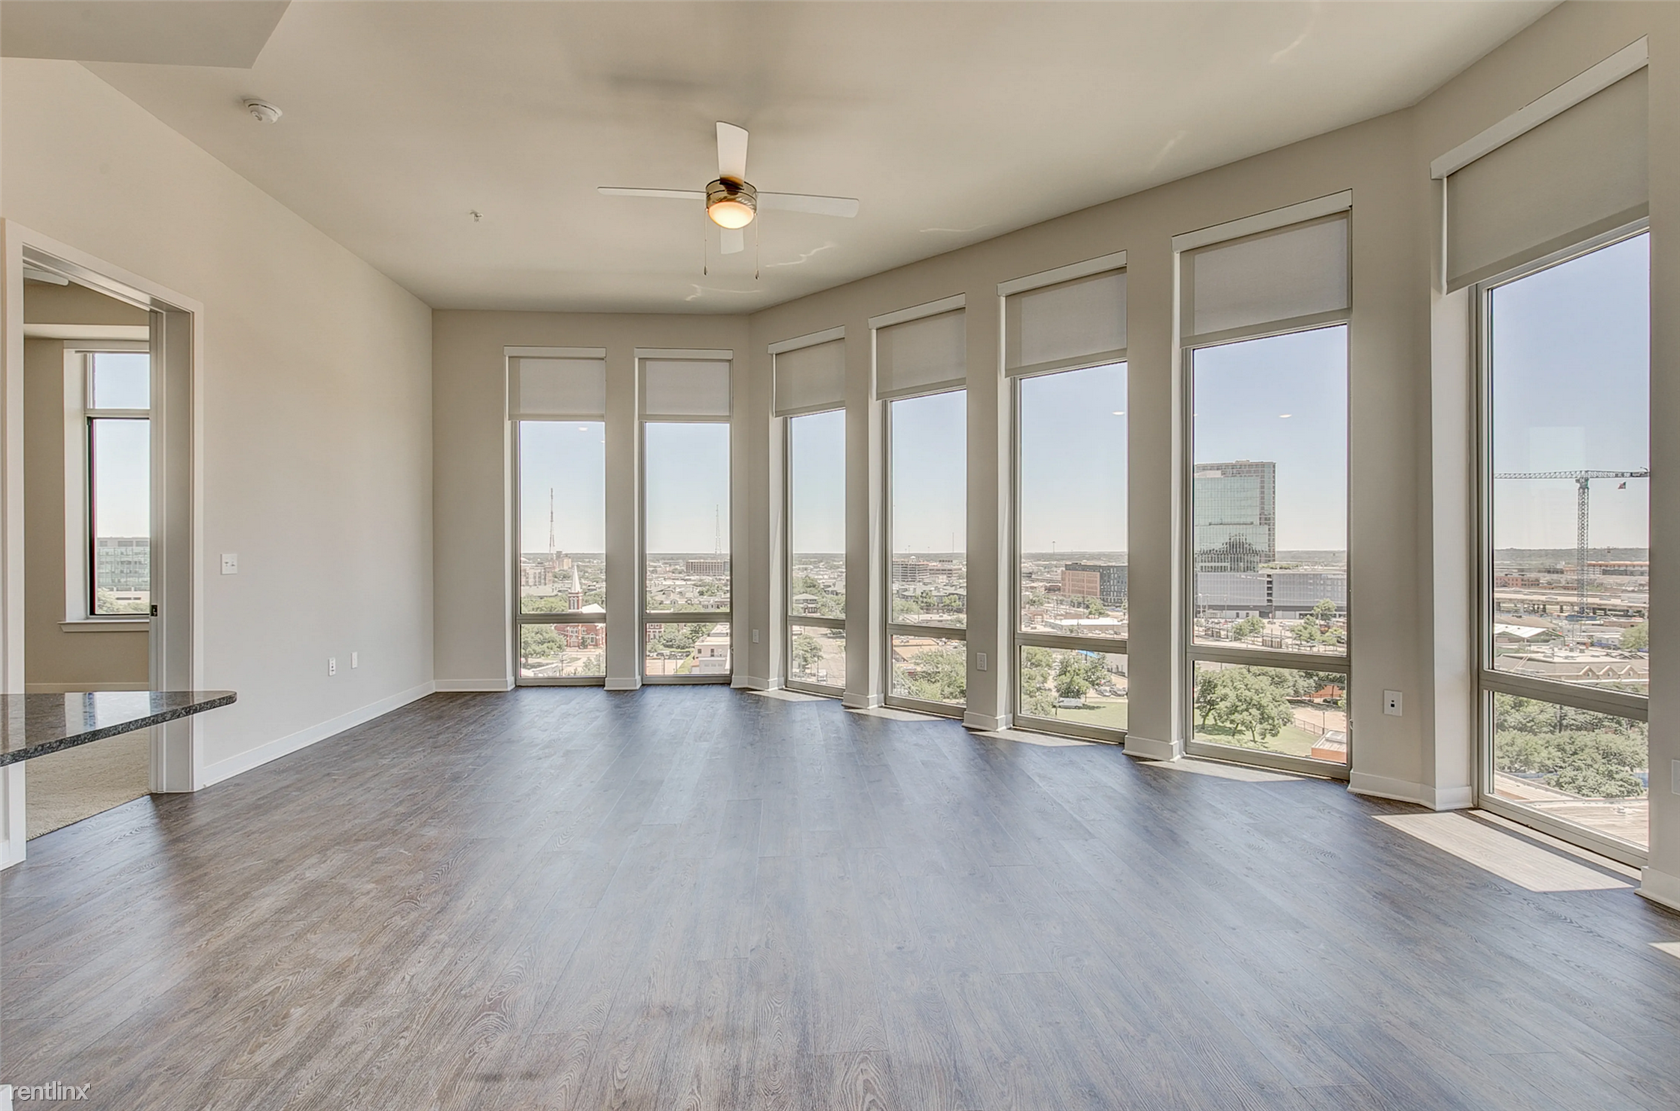 2821 Live Oak St, Dallas, TX - $5,305 USD/ month